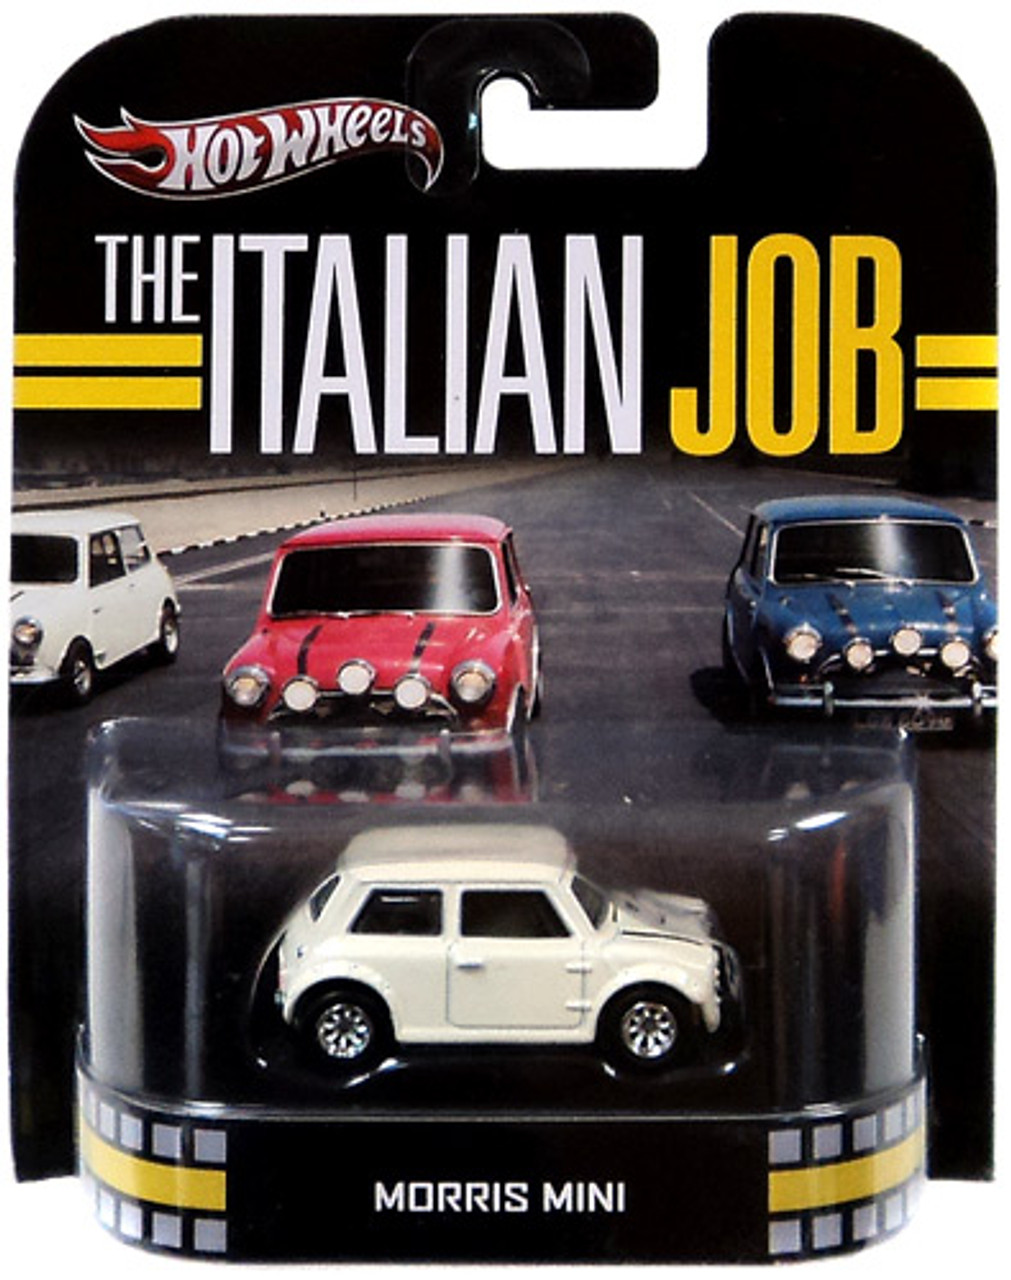 The Italian Job Hot Wheels Retro Morris Mini Diecast Vehicle [White]